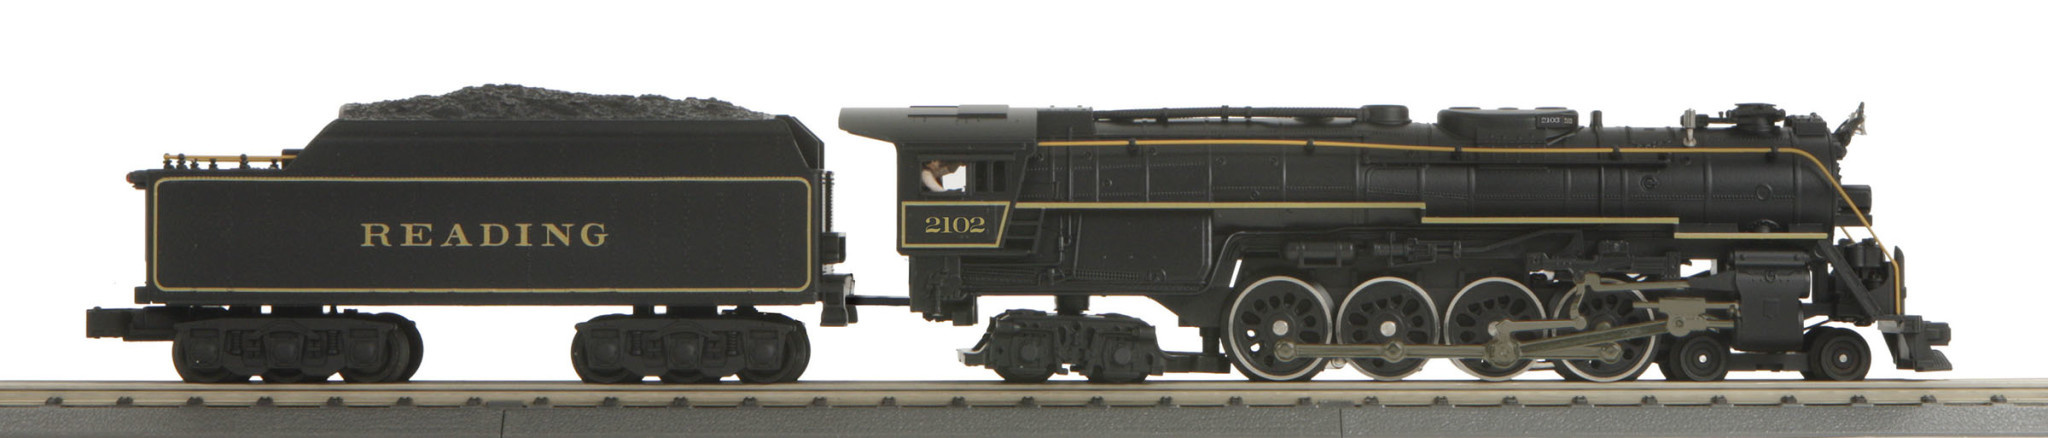 MTH - RailKing 30-1795-1 4-8-4 Imperial Reading Steam Engine Proto 3